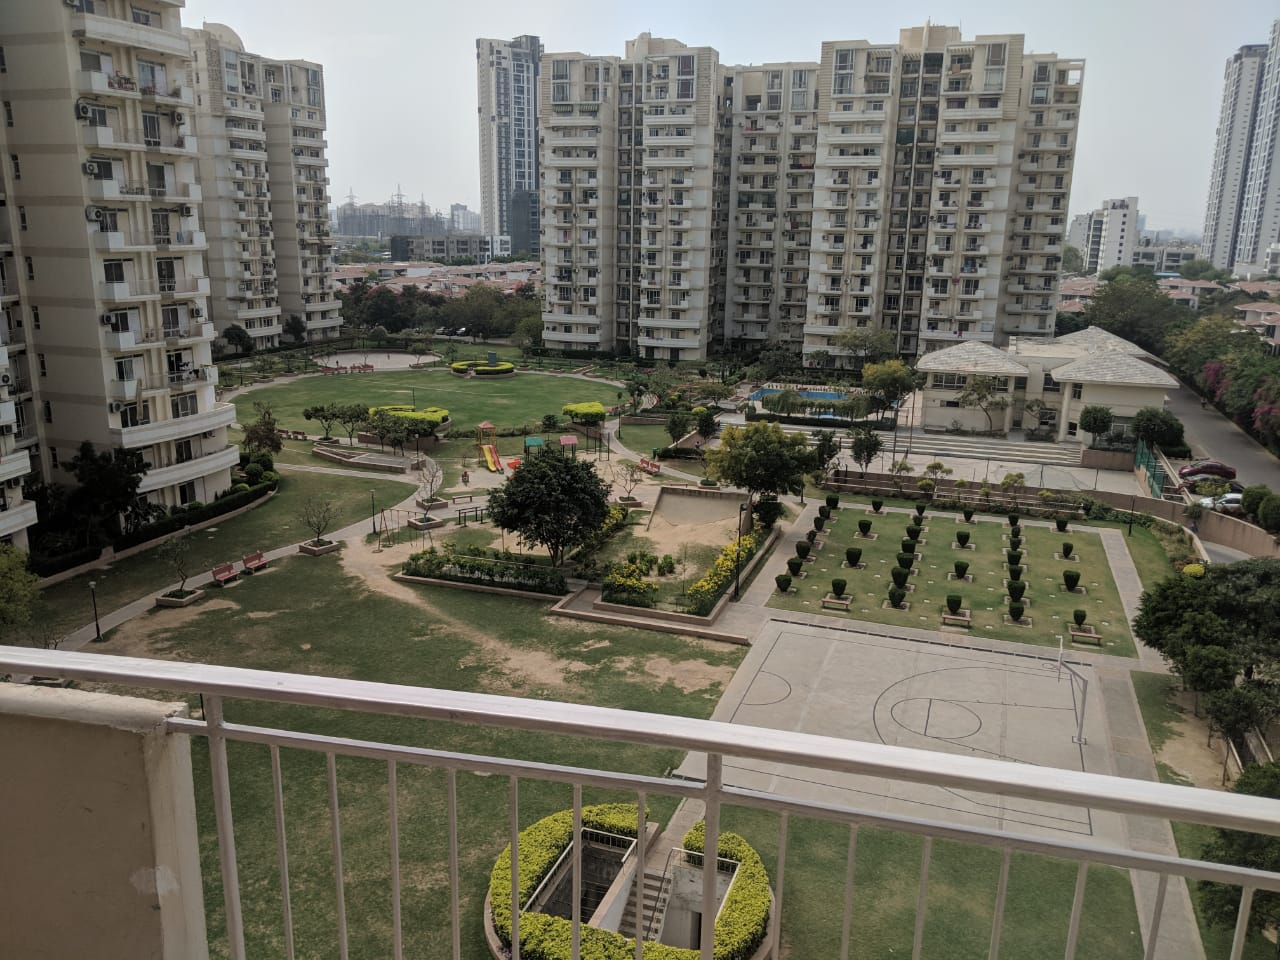 Park View City-1, 3 BHK+Servant apartment available on sale